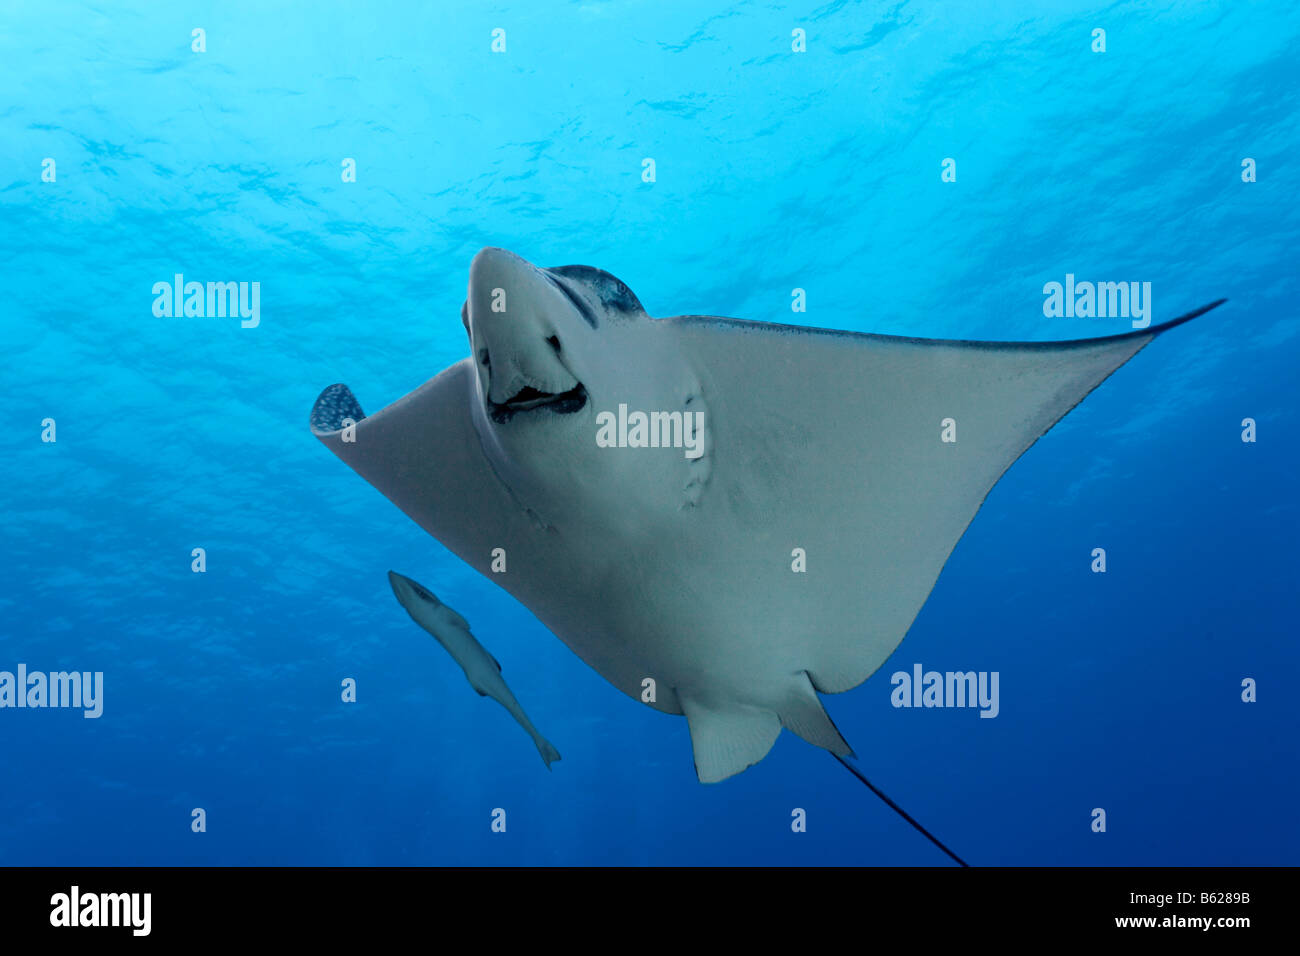 Spotted Eagle Ray (Aetobatus narinari) from below in blue water, Live sharksucker (Echeneis naucrates), Hopkins, - Stock Image